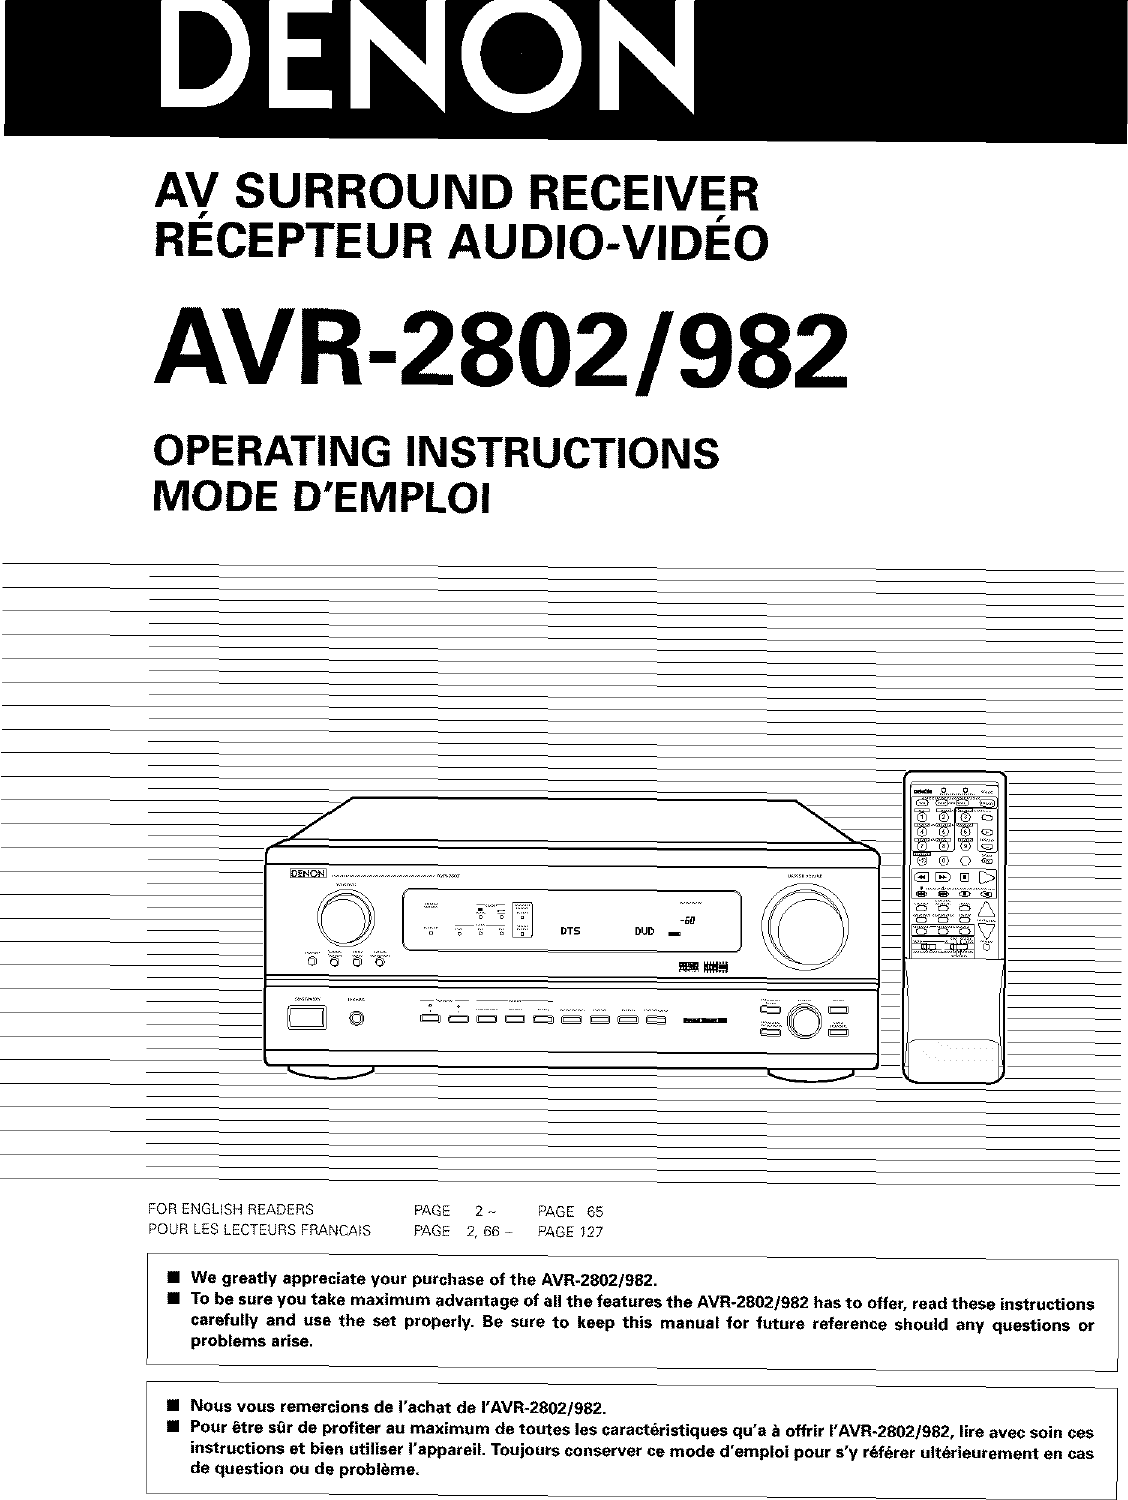 Denon AVR 2802 User Manual RECEIVER Manuals And Guides